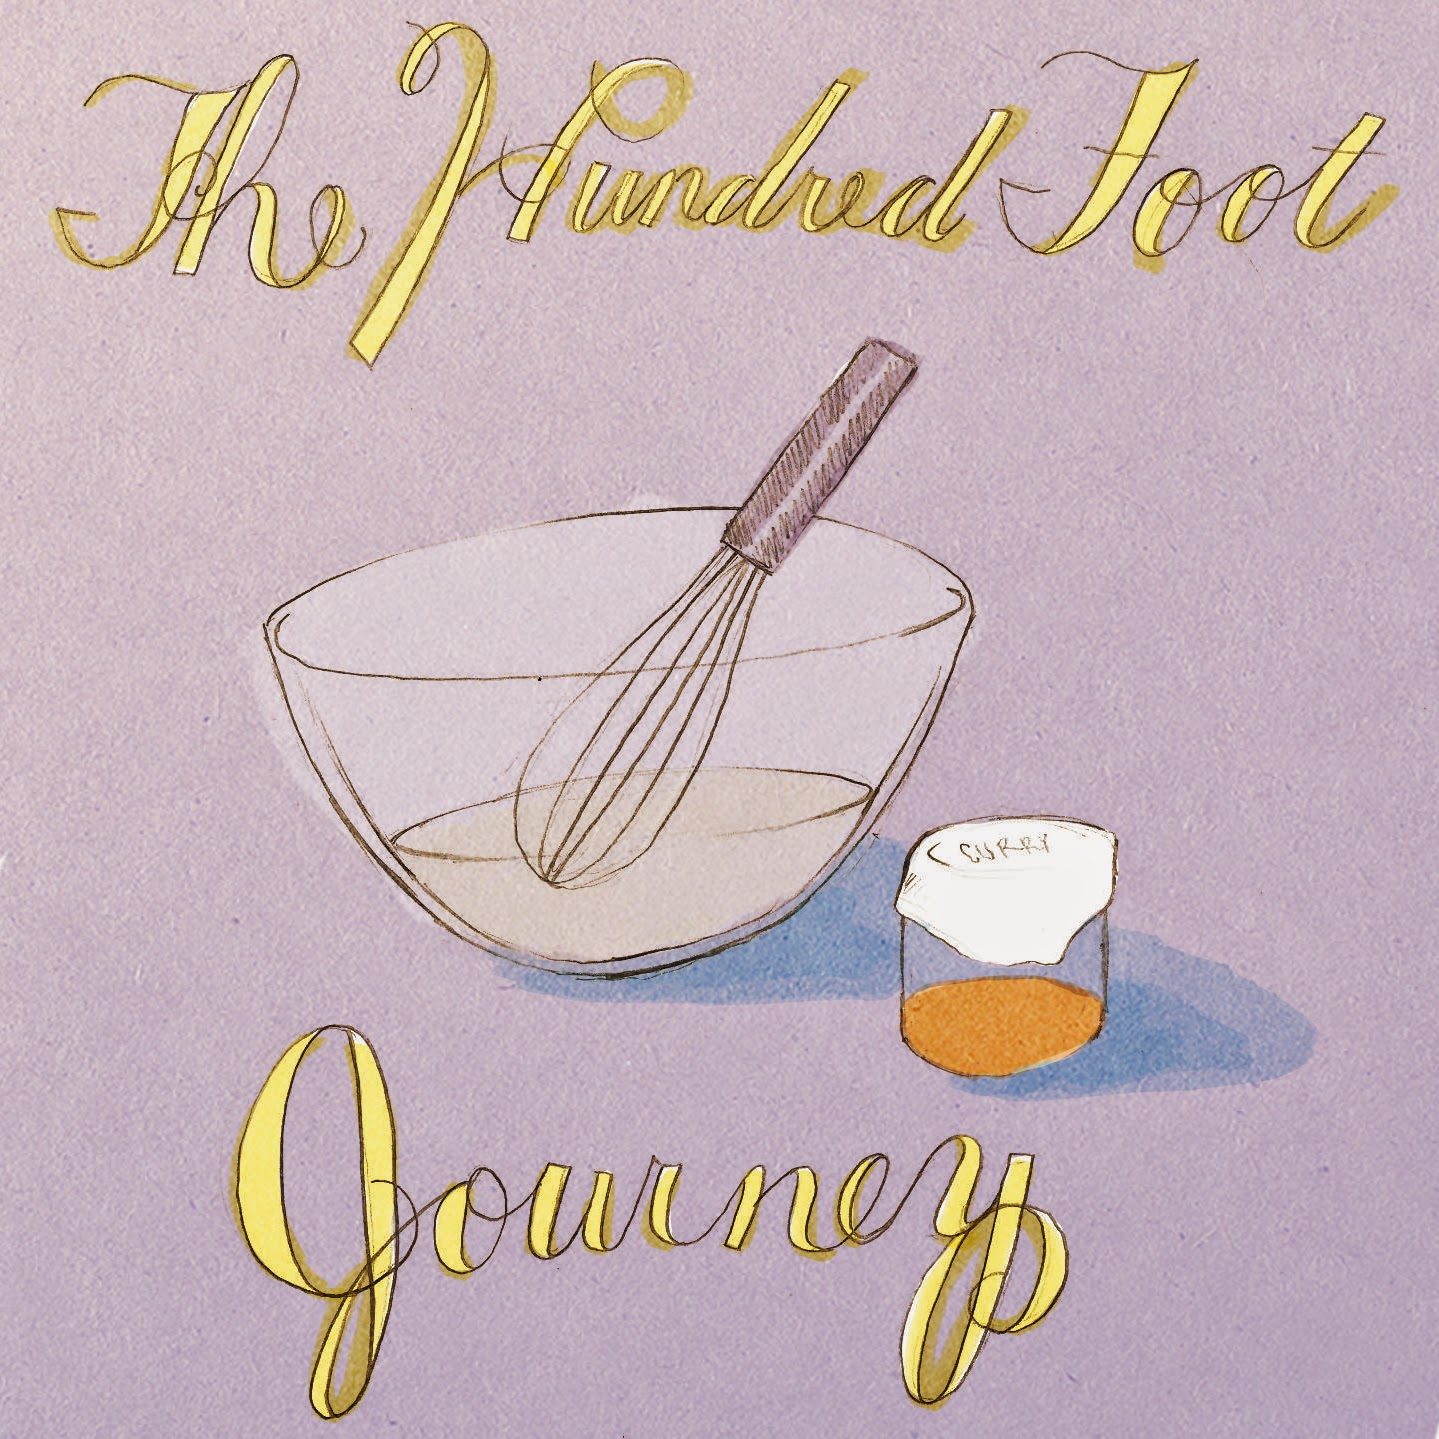 cooking-illustration, whisk, curry, the-hundred-foot-journey-movie